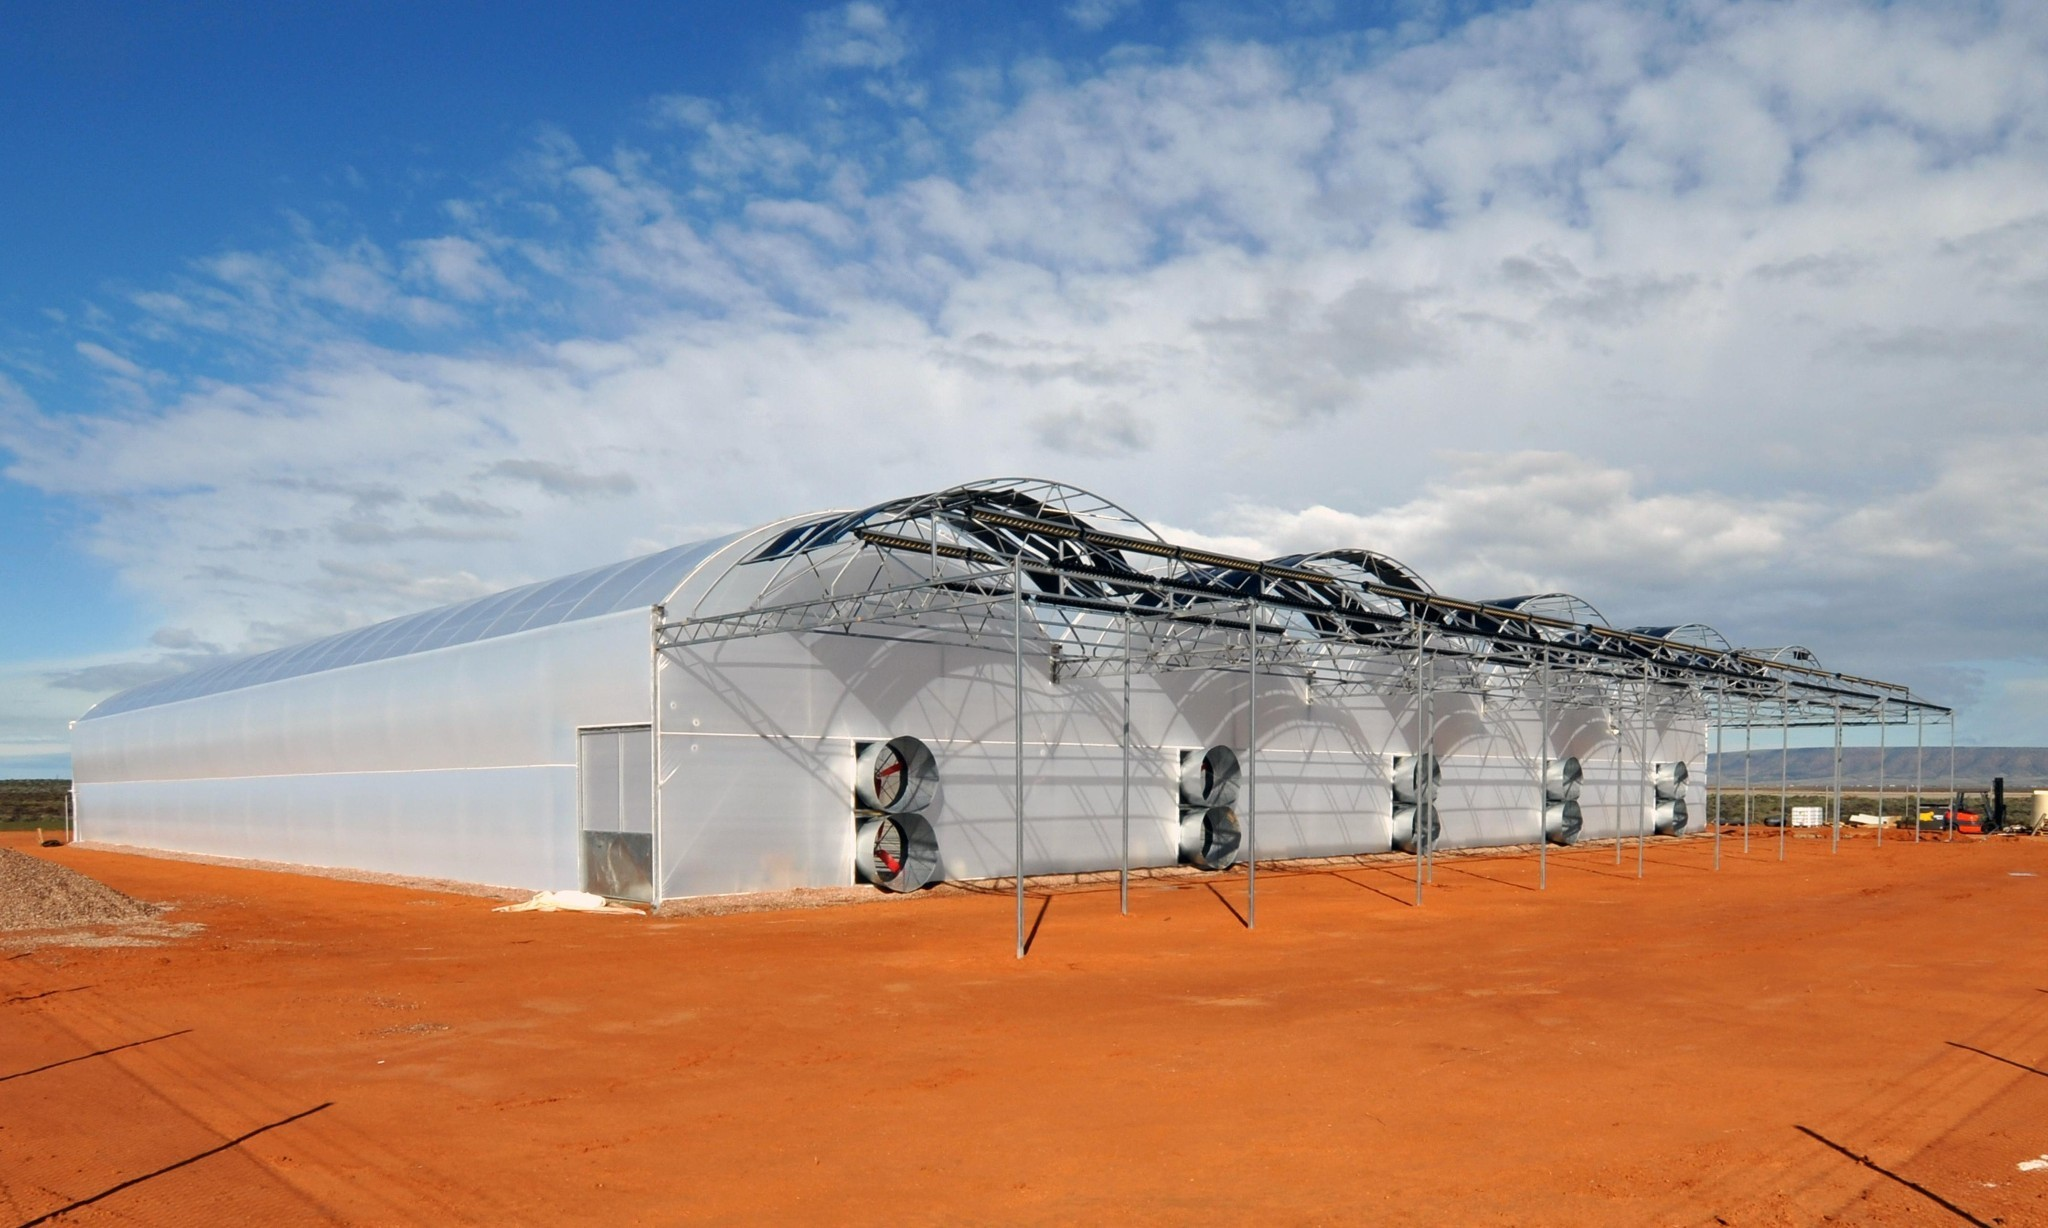 The greenhouse that acts like a beetle and other inventions inspired by nature